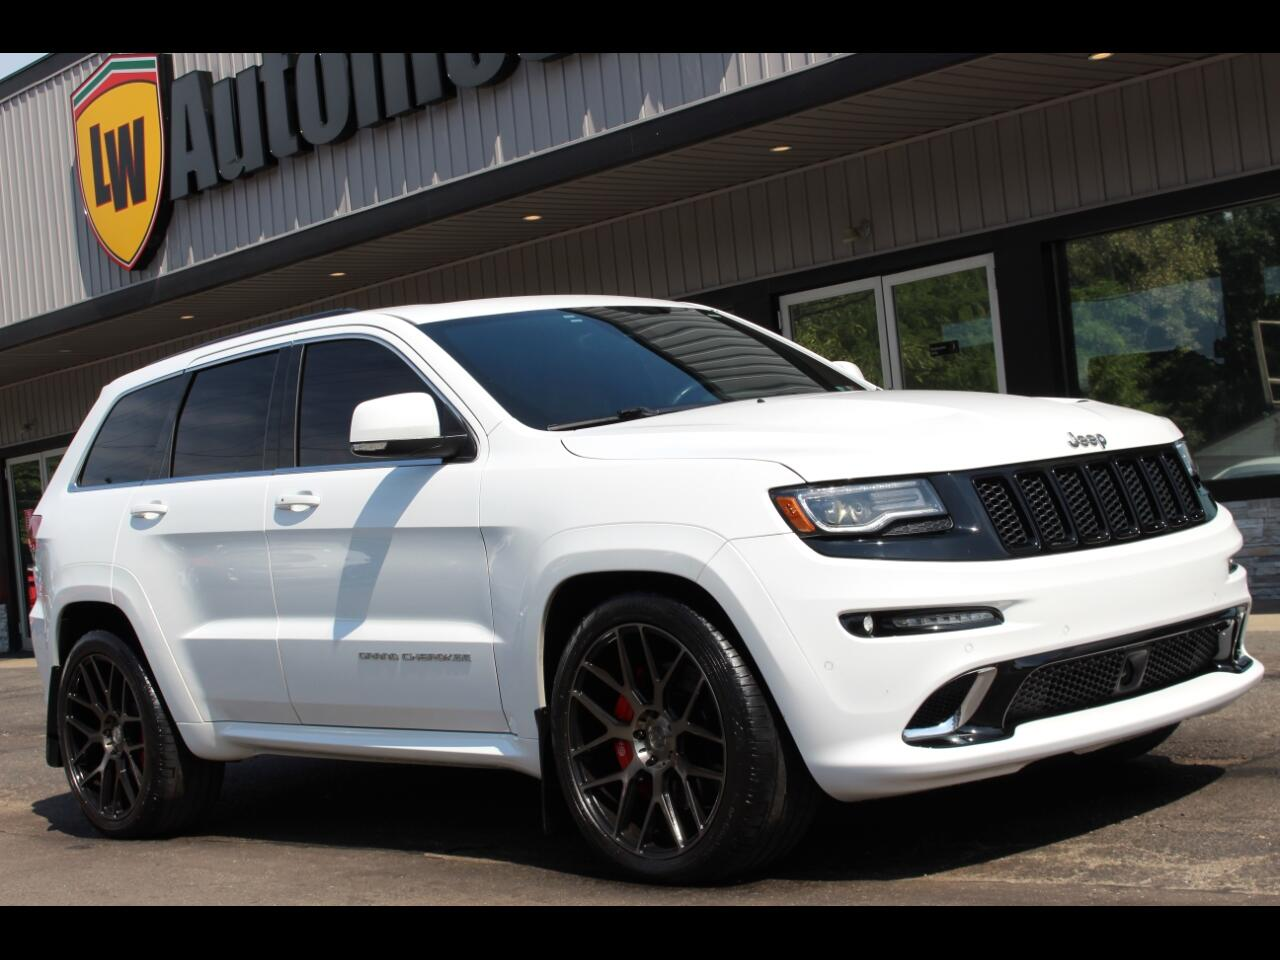 Jeep Grand Cherokee 4dr SRT-8 4WD 2015